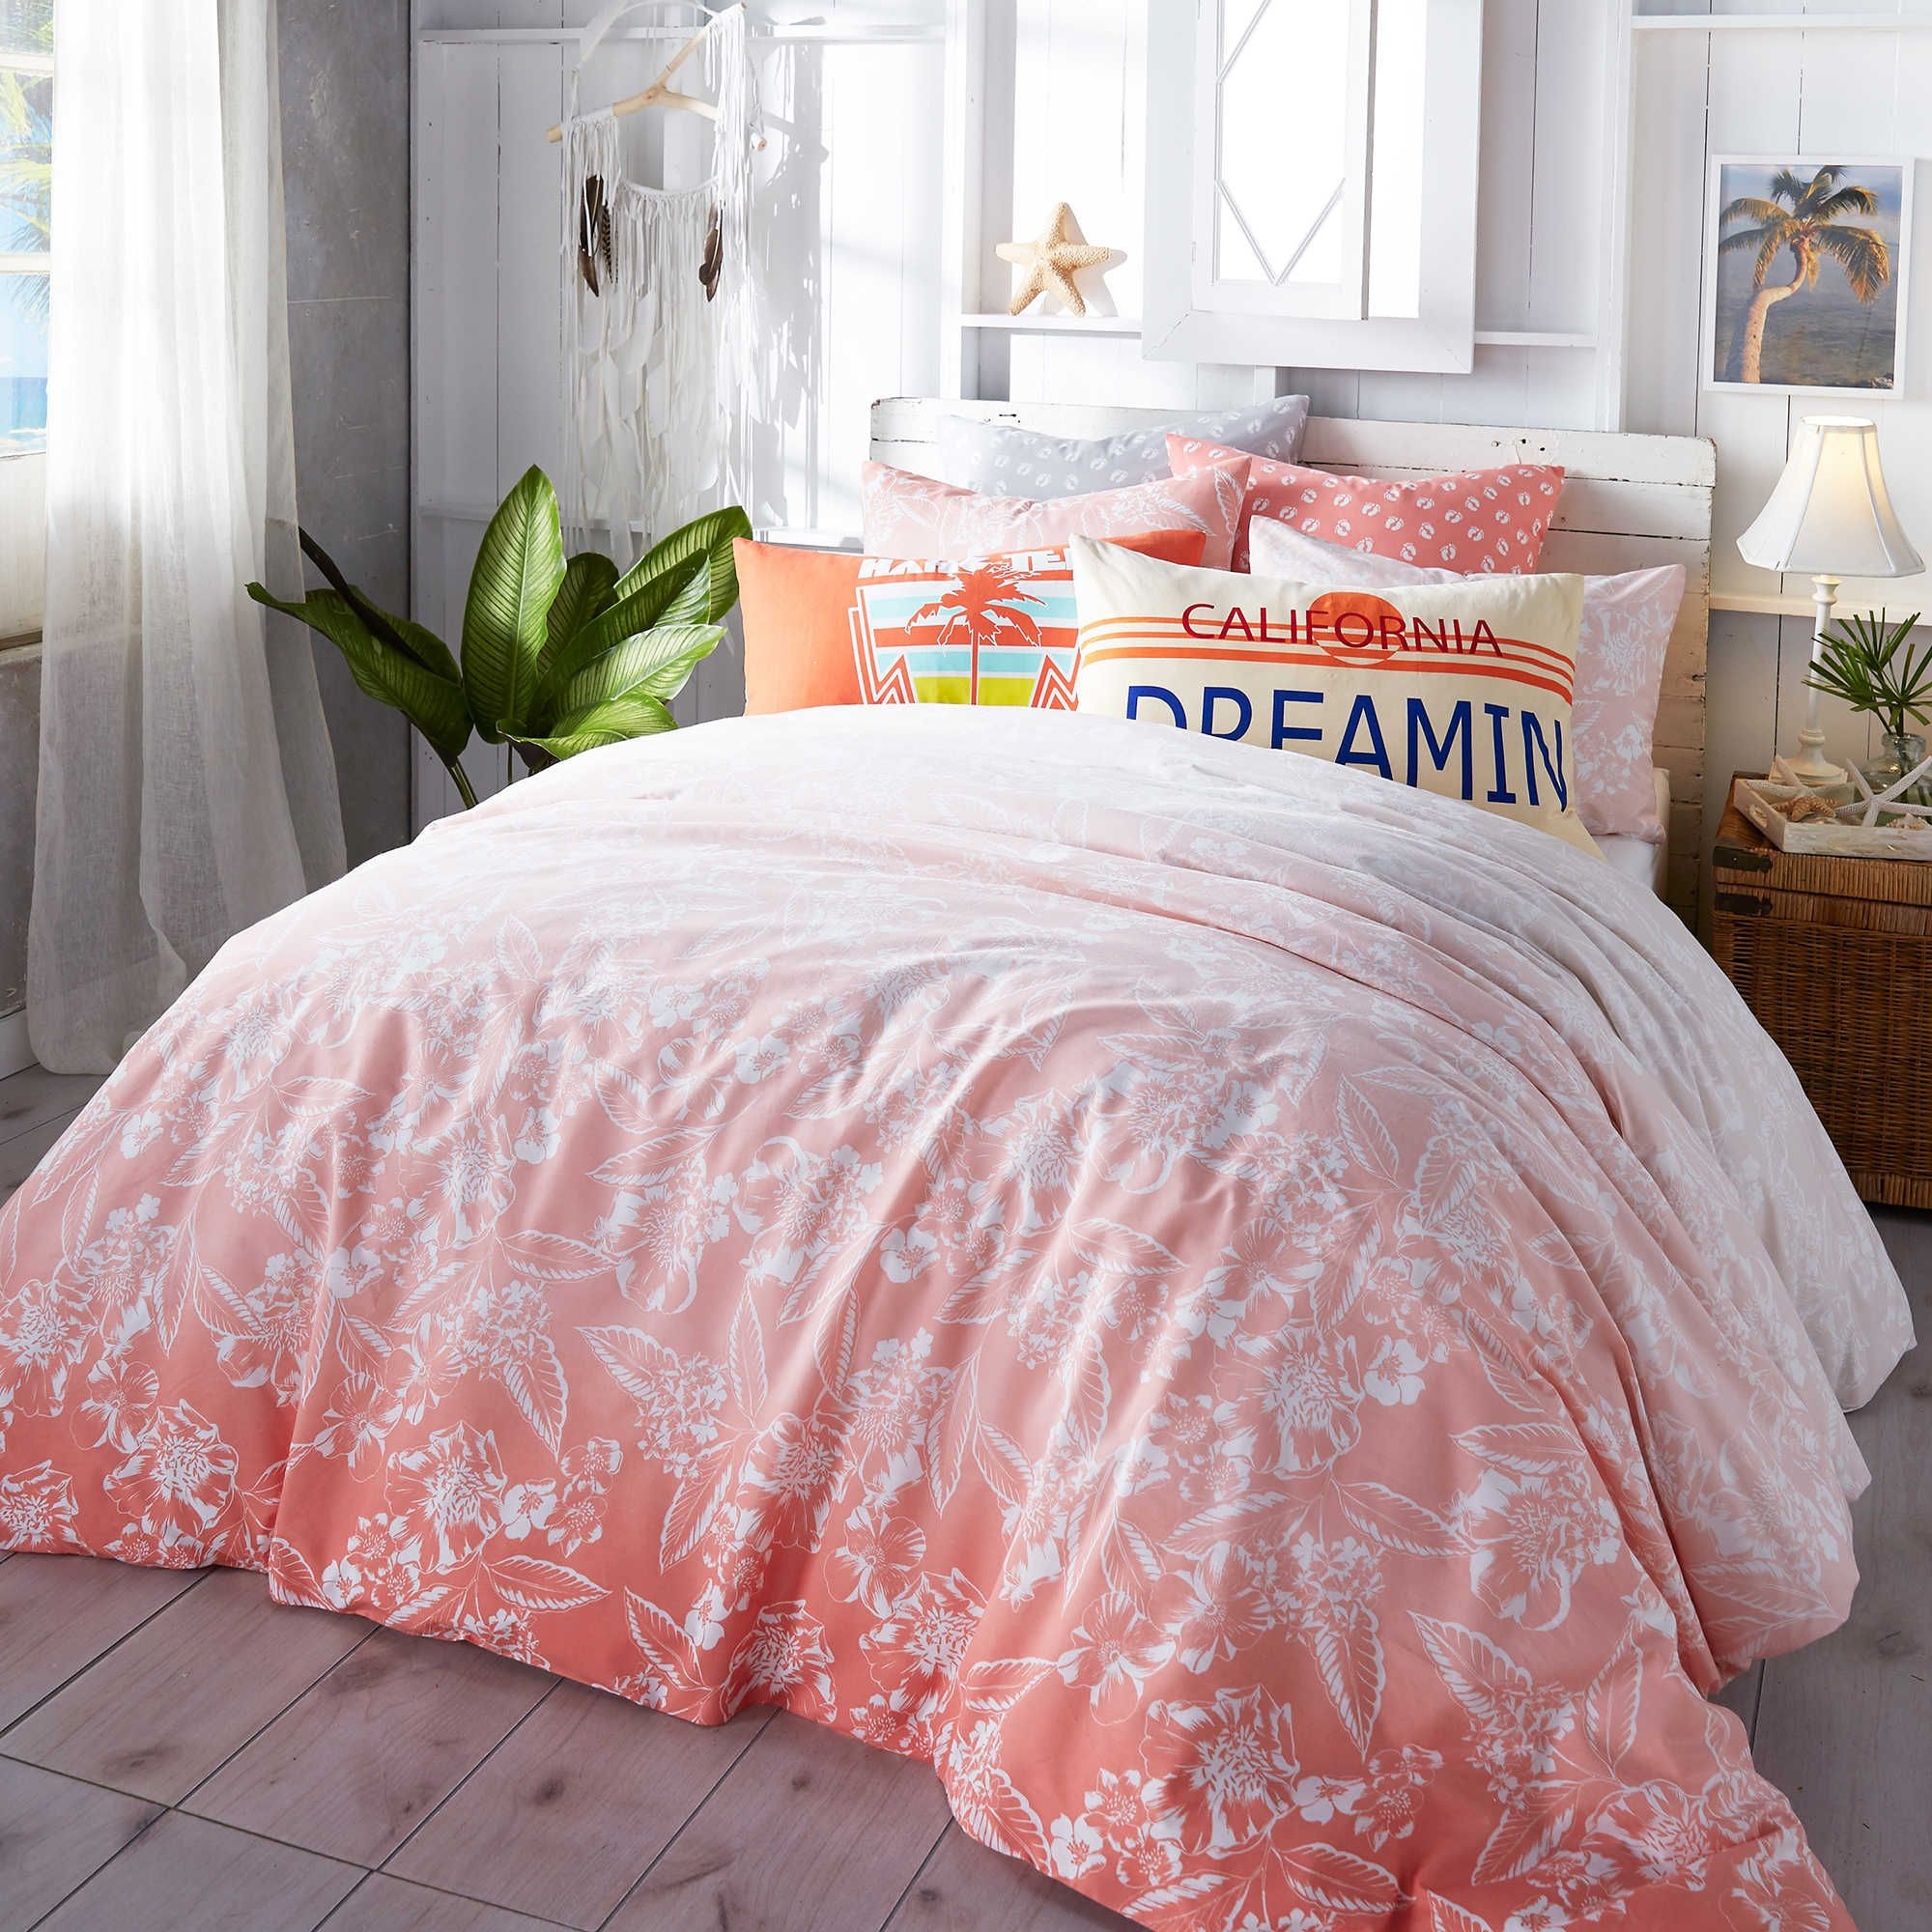 bedding extra good image college long of twin design home comforter databreach tide southern